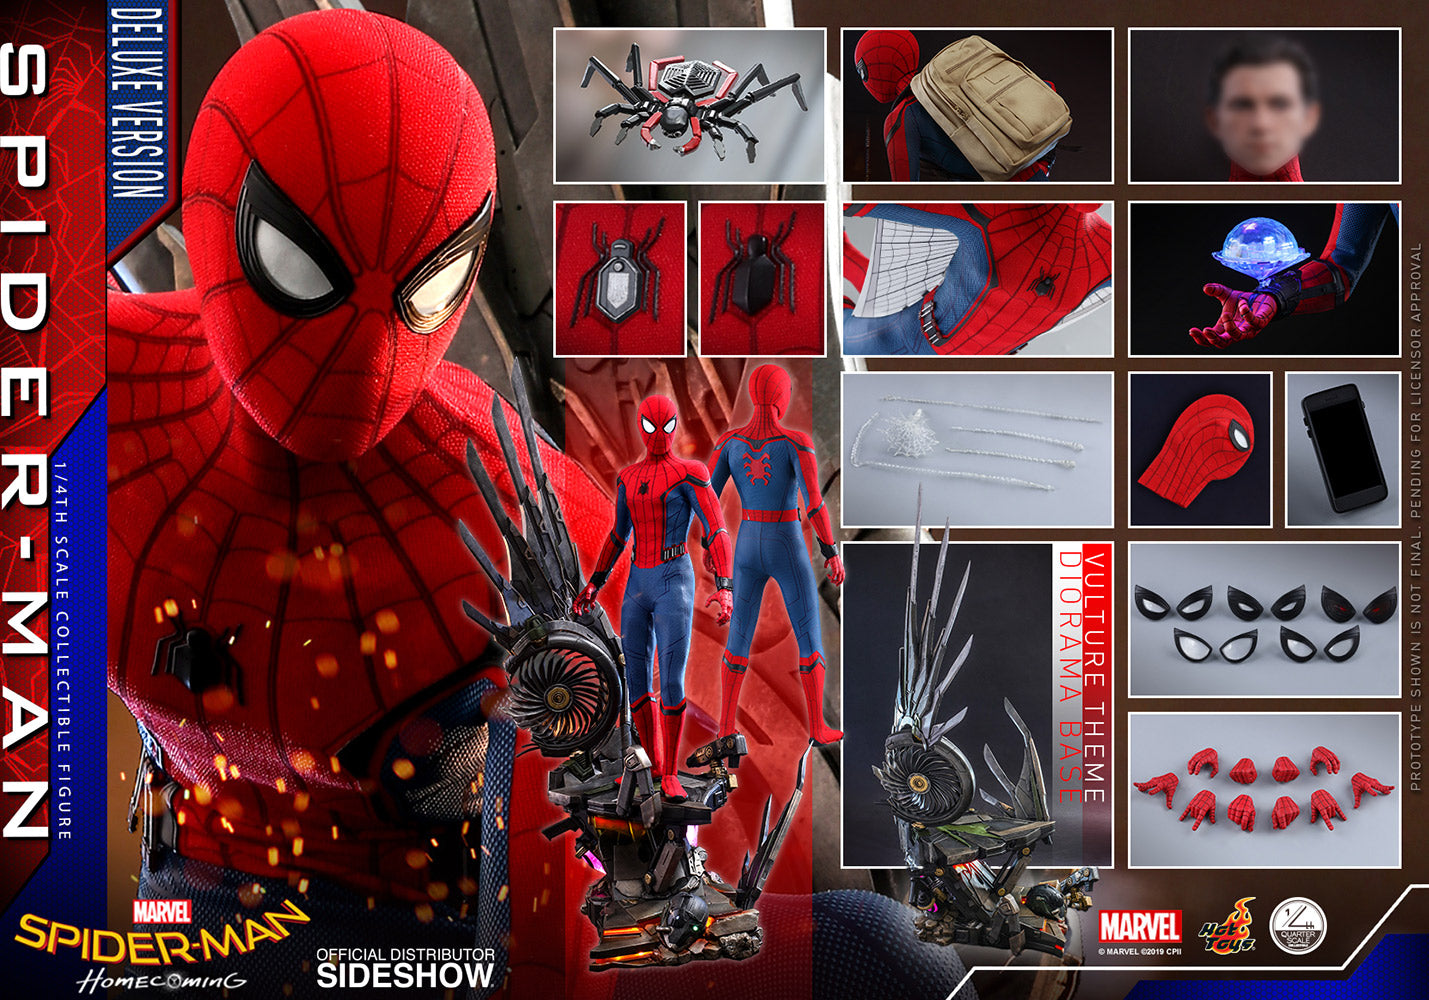 Hot Toys Spider-Man: Homecoming DELUXE Marvel Quarter Scale Figure - Collectors Row Inc.